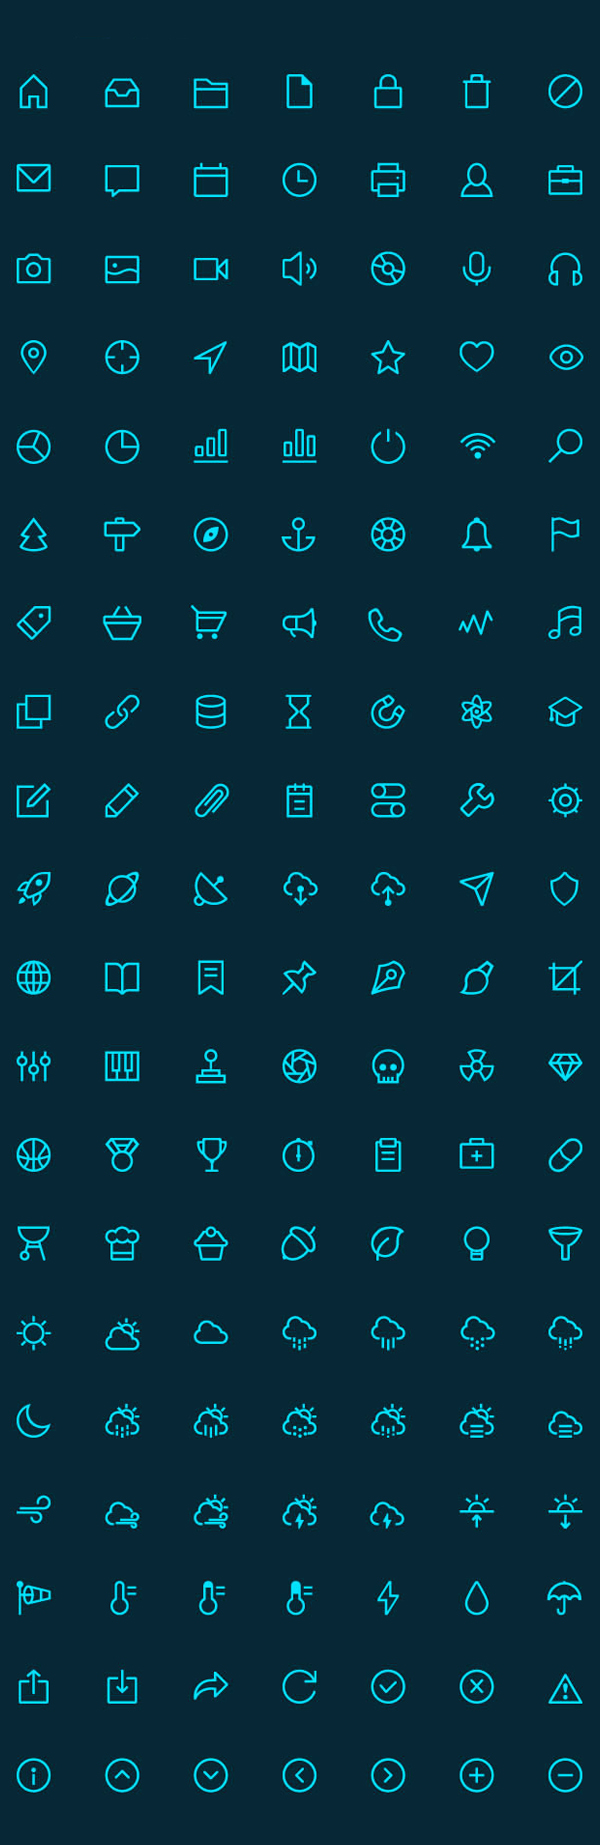 Free Linear Icons Vector Set (140 Icons)